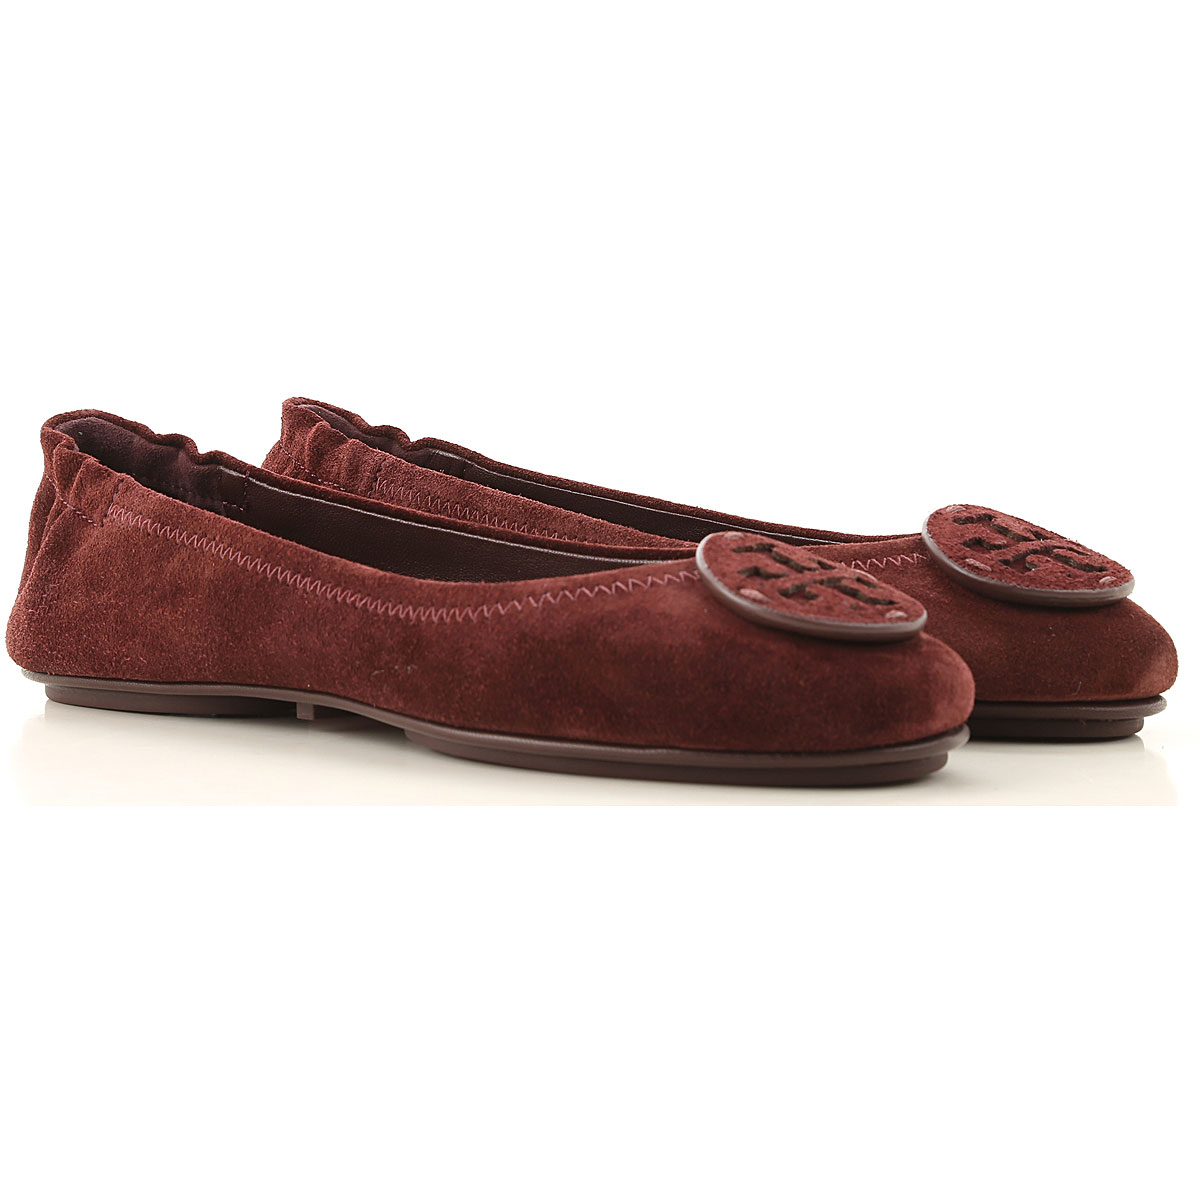 Tory Burch Ballet Flats Ballerina Shoes for Women On Sale, Black Cherry, Suede leather, 2019, 6 6.5 7 9